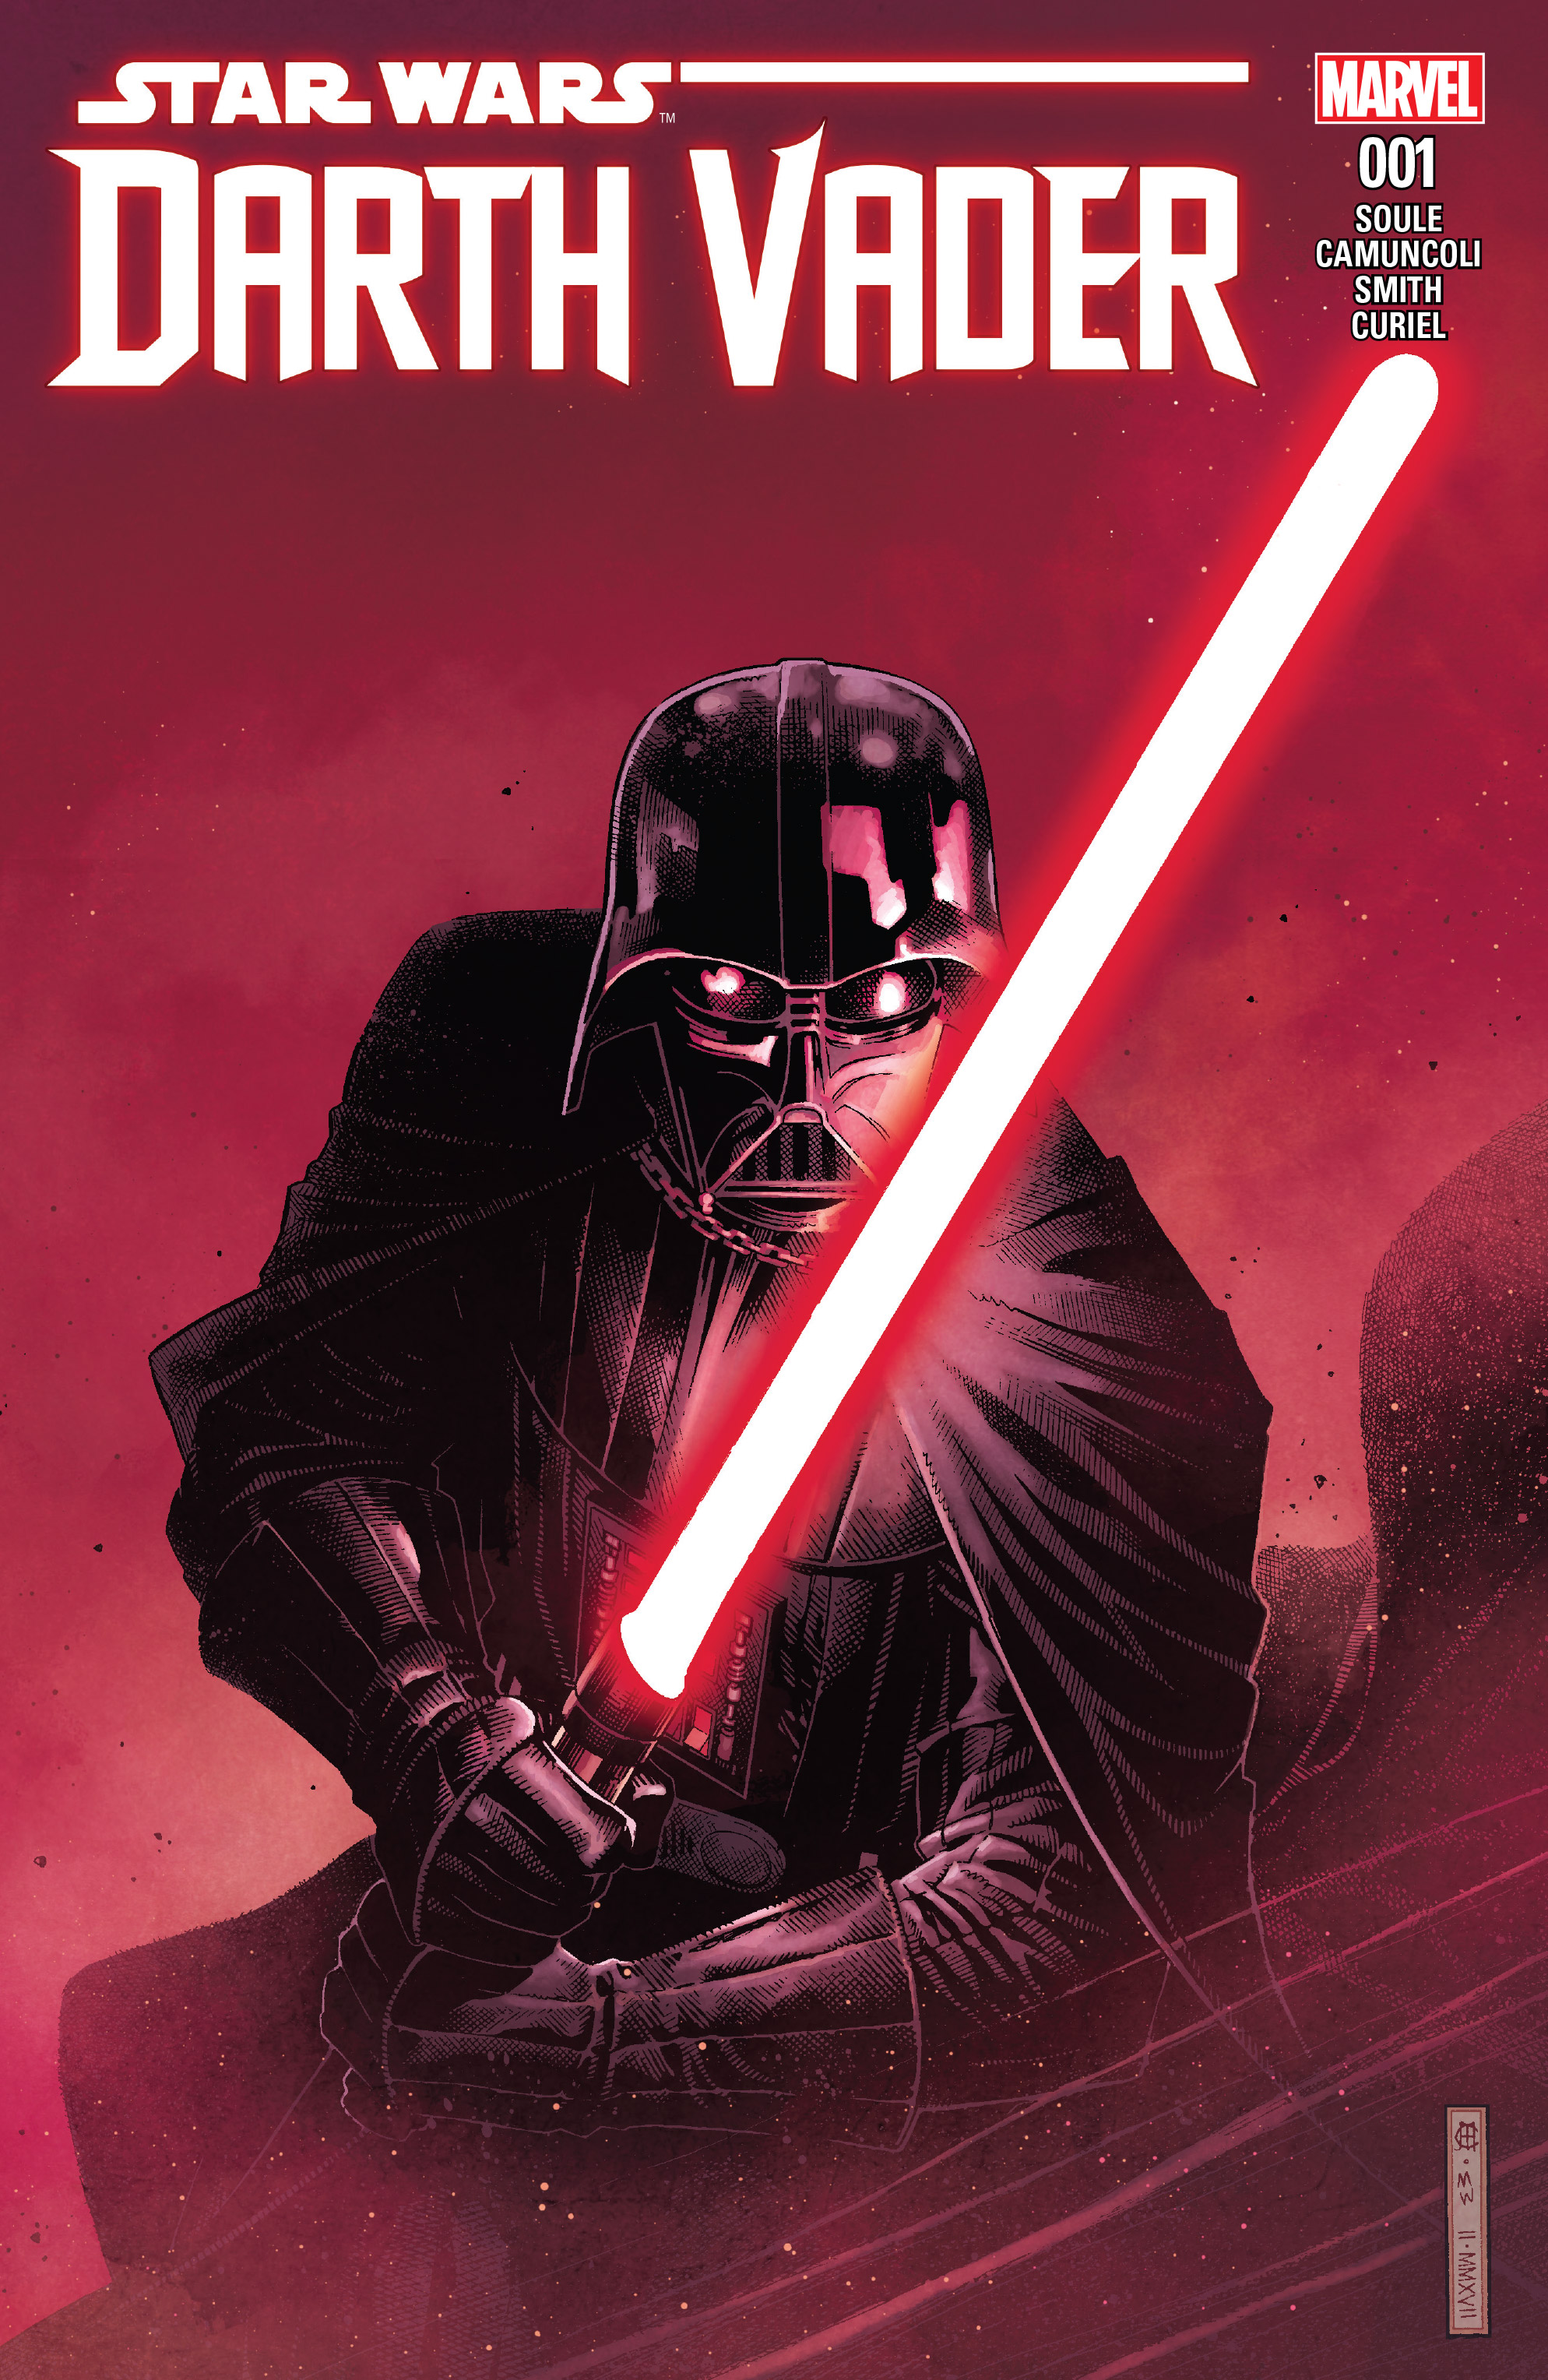 Darth Vader Dark Lord of the Sith cover